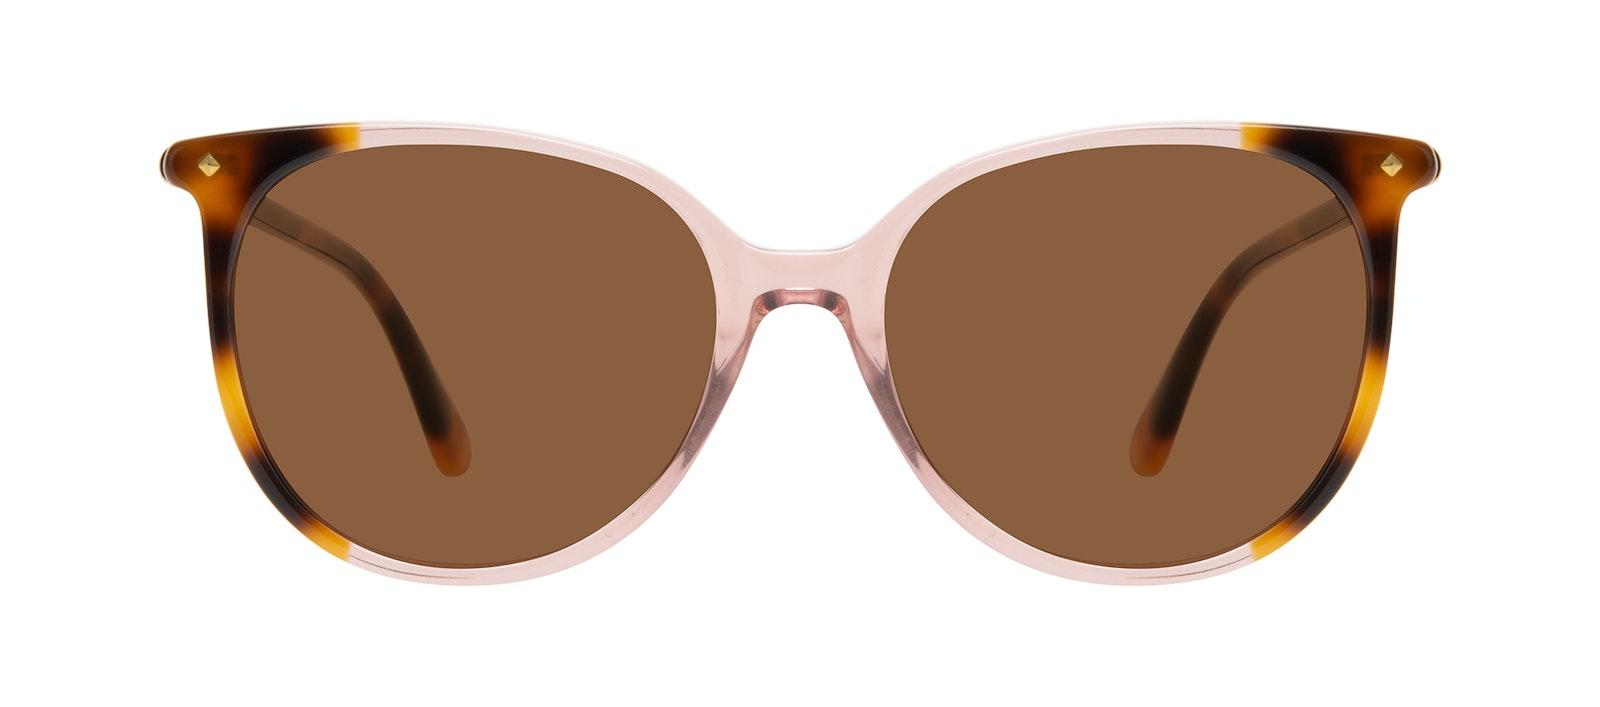 Affordable Fashion Glasses Round Sunglasses Women Area Rose Tort Front